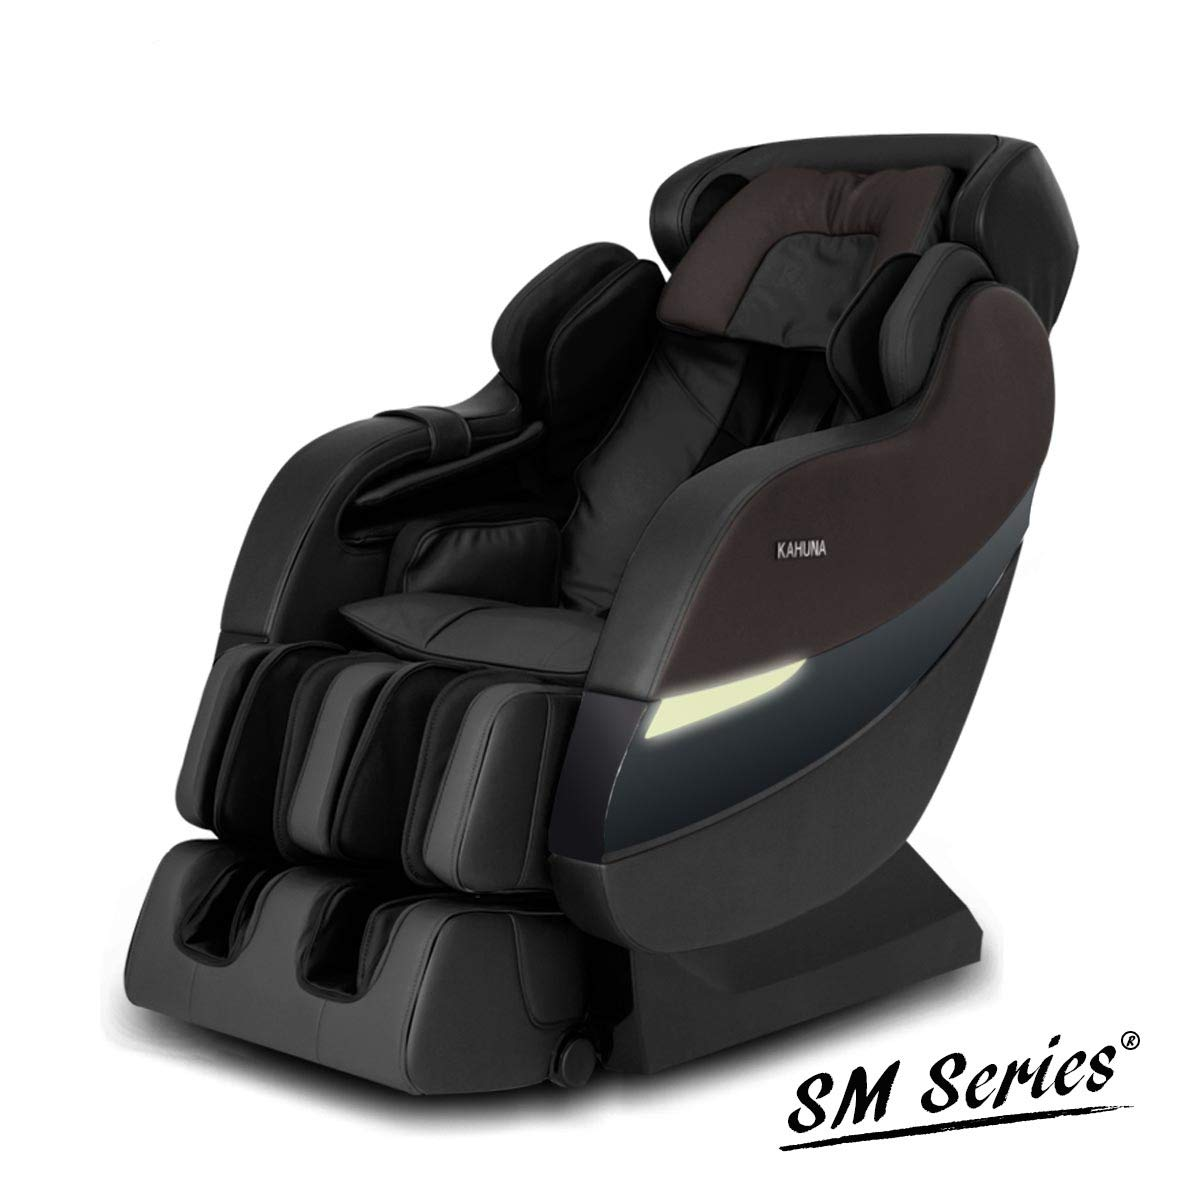 Top Performance Kahuna Superior Massage Chair with SL-Track 6 Rollers - SM-7300S (Dark Brown)